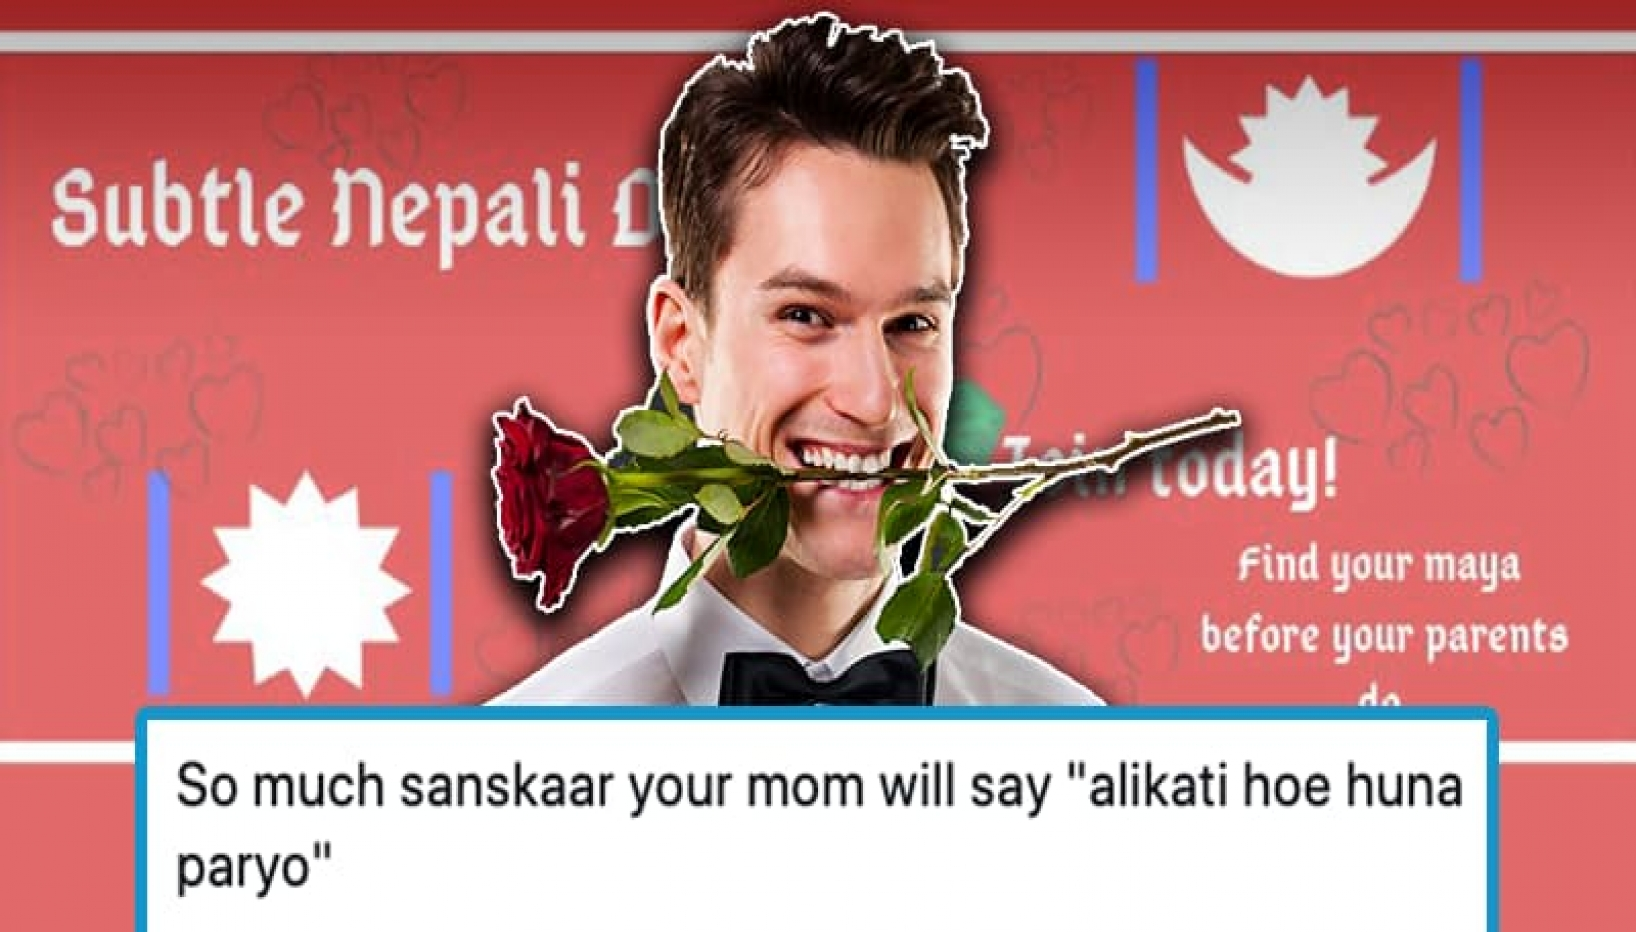 10 Best Auctioning Lines From Subtle Nepali Dating